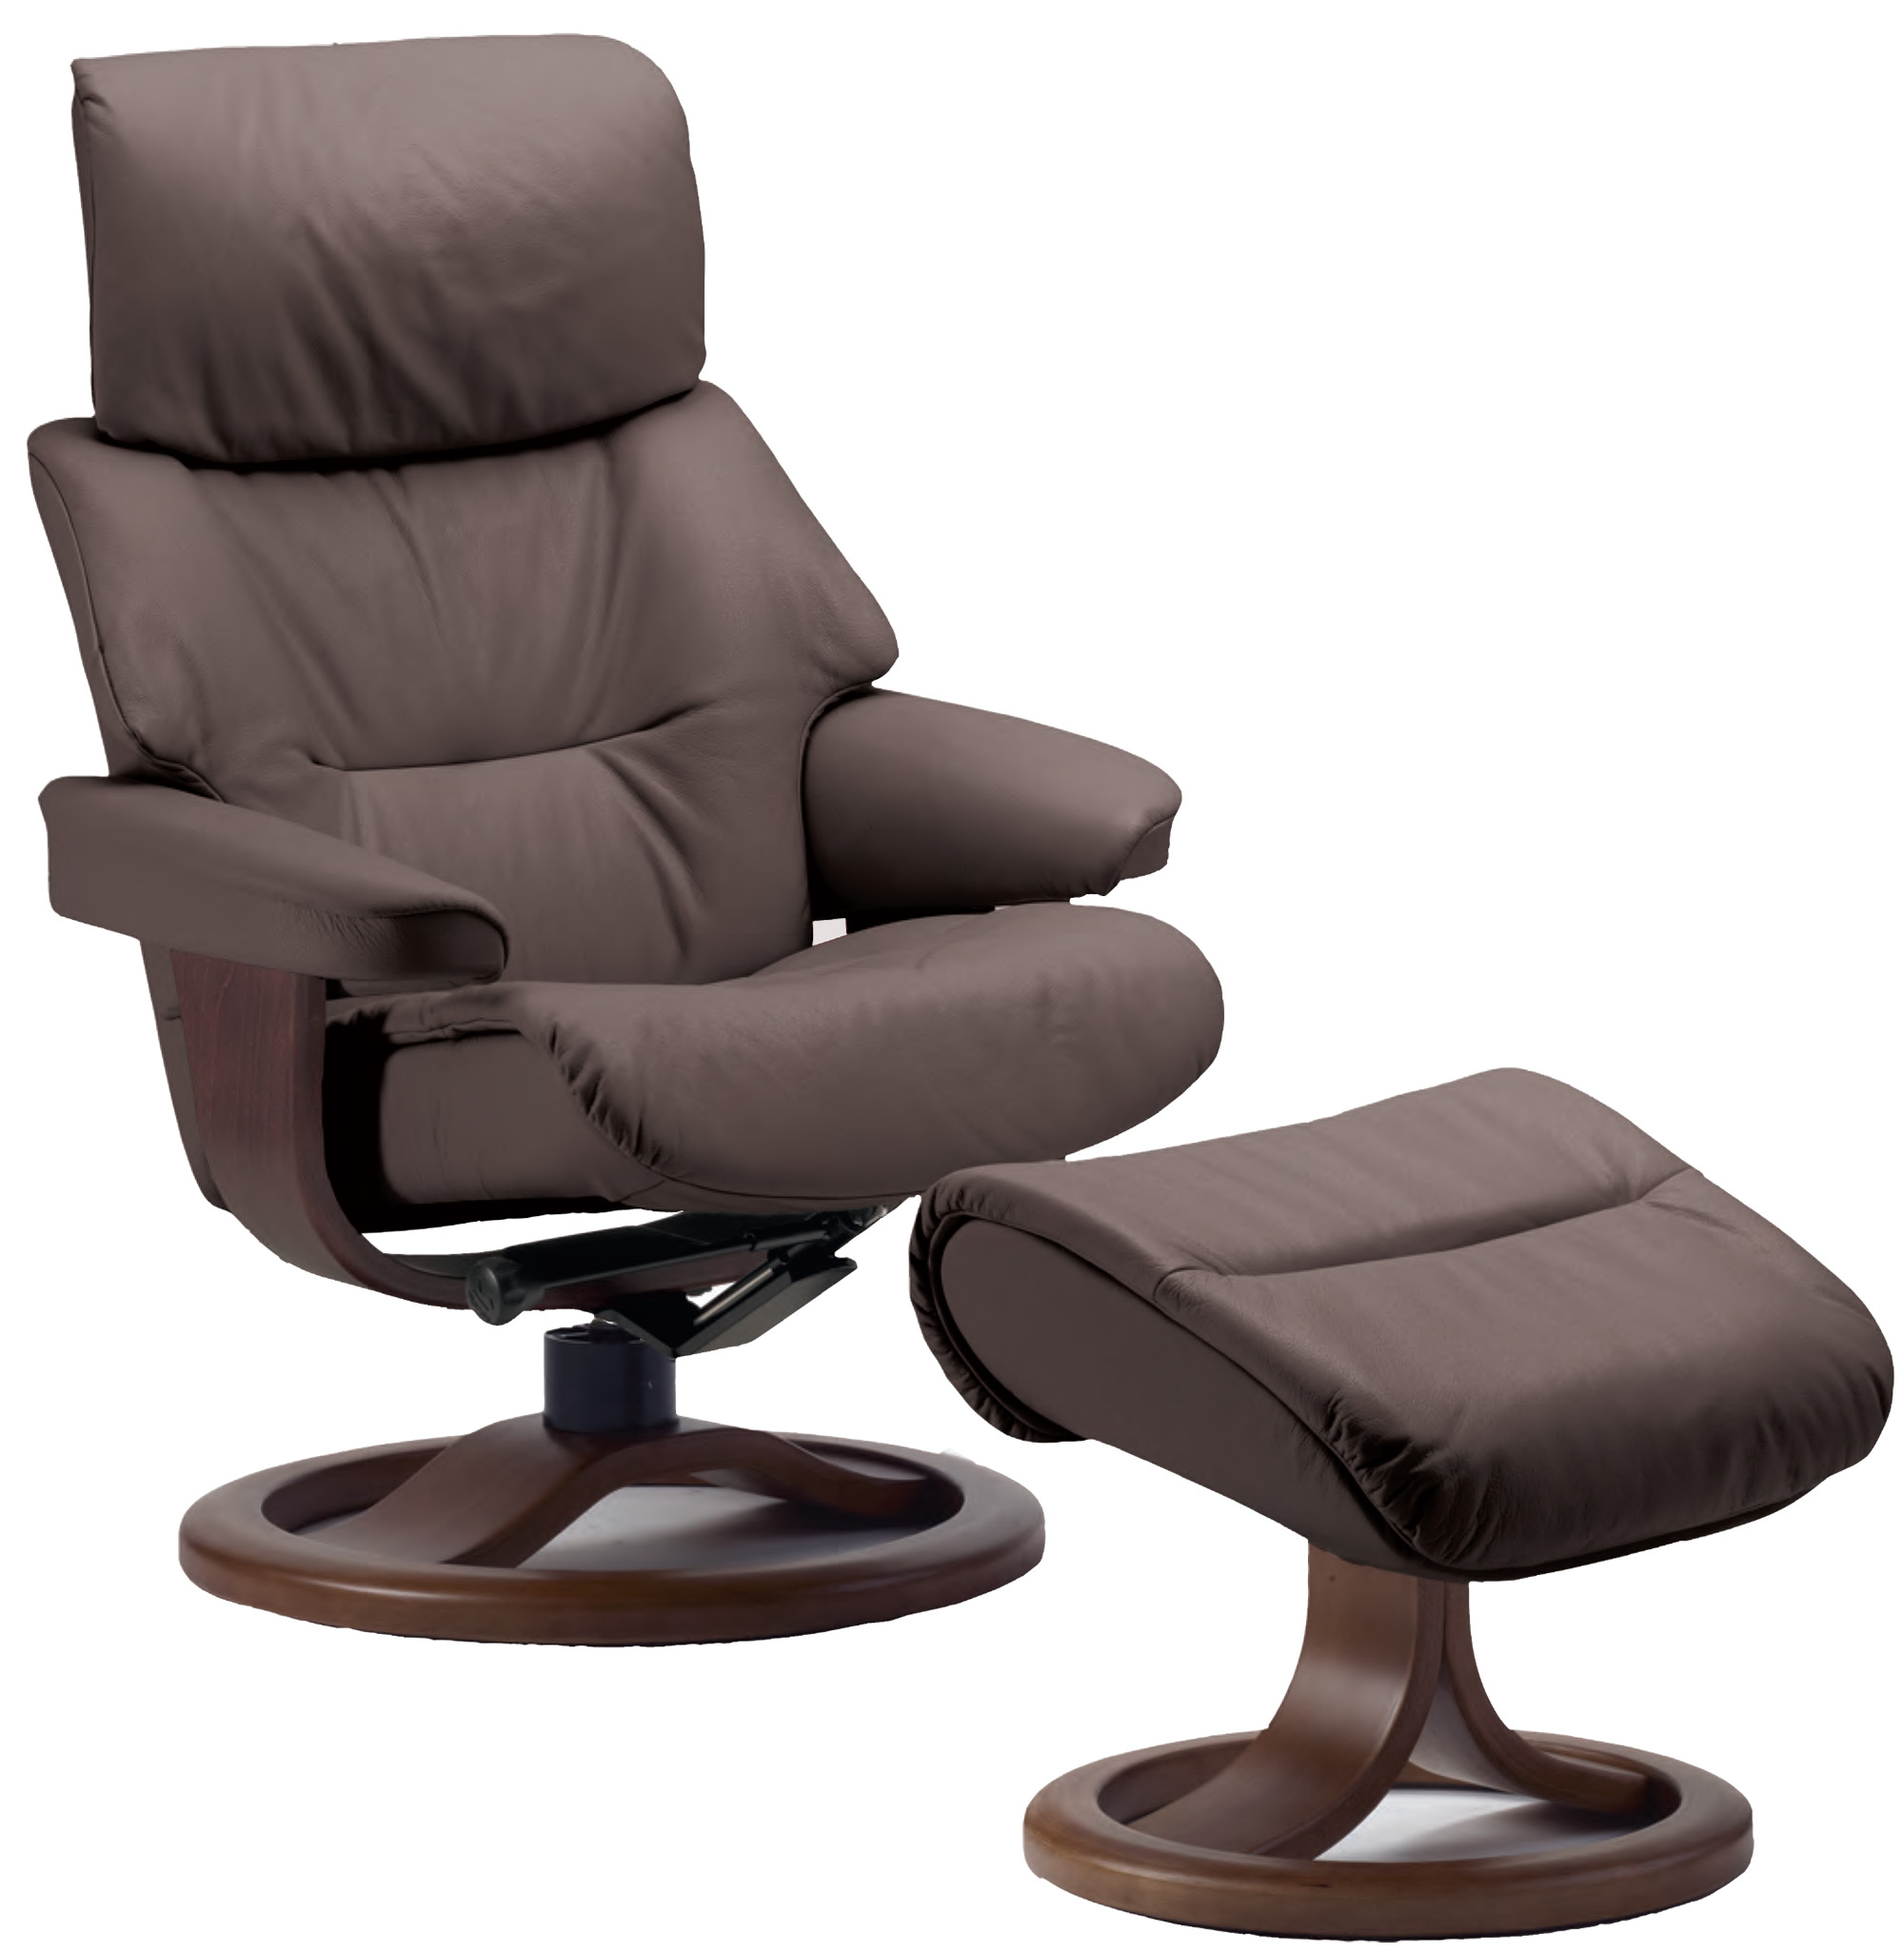 Fjords Grip Ergonomic Leather Recliner Chair Ottoman Scandinavian Norwegian